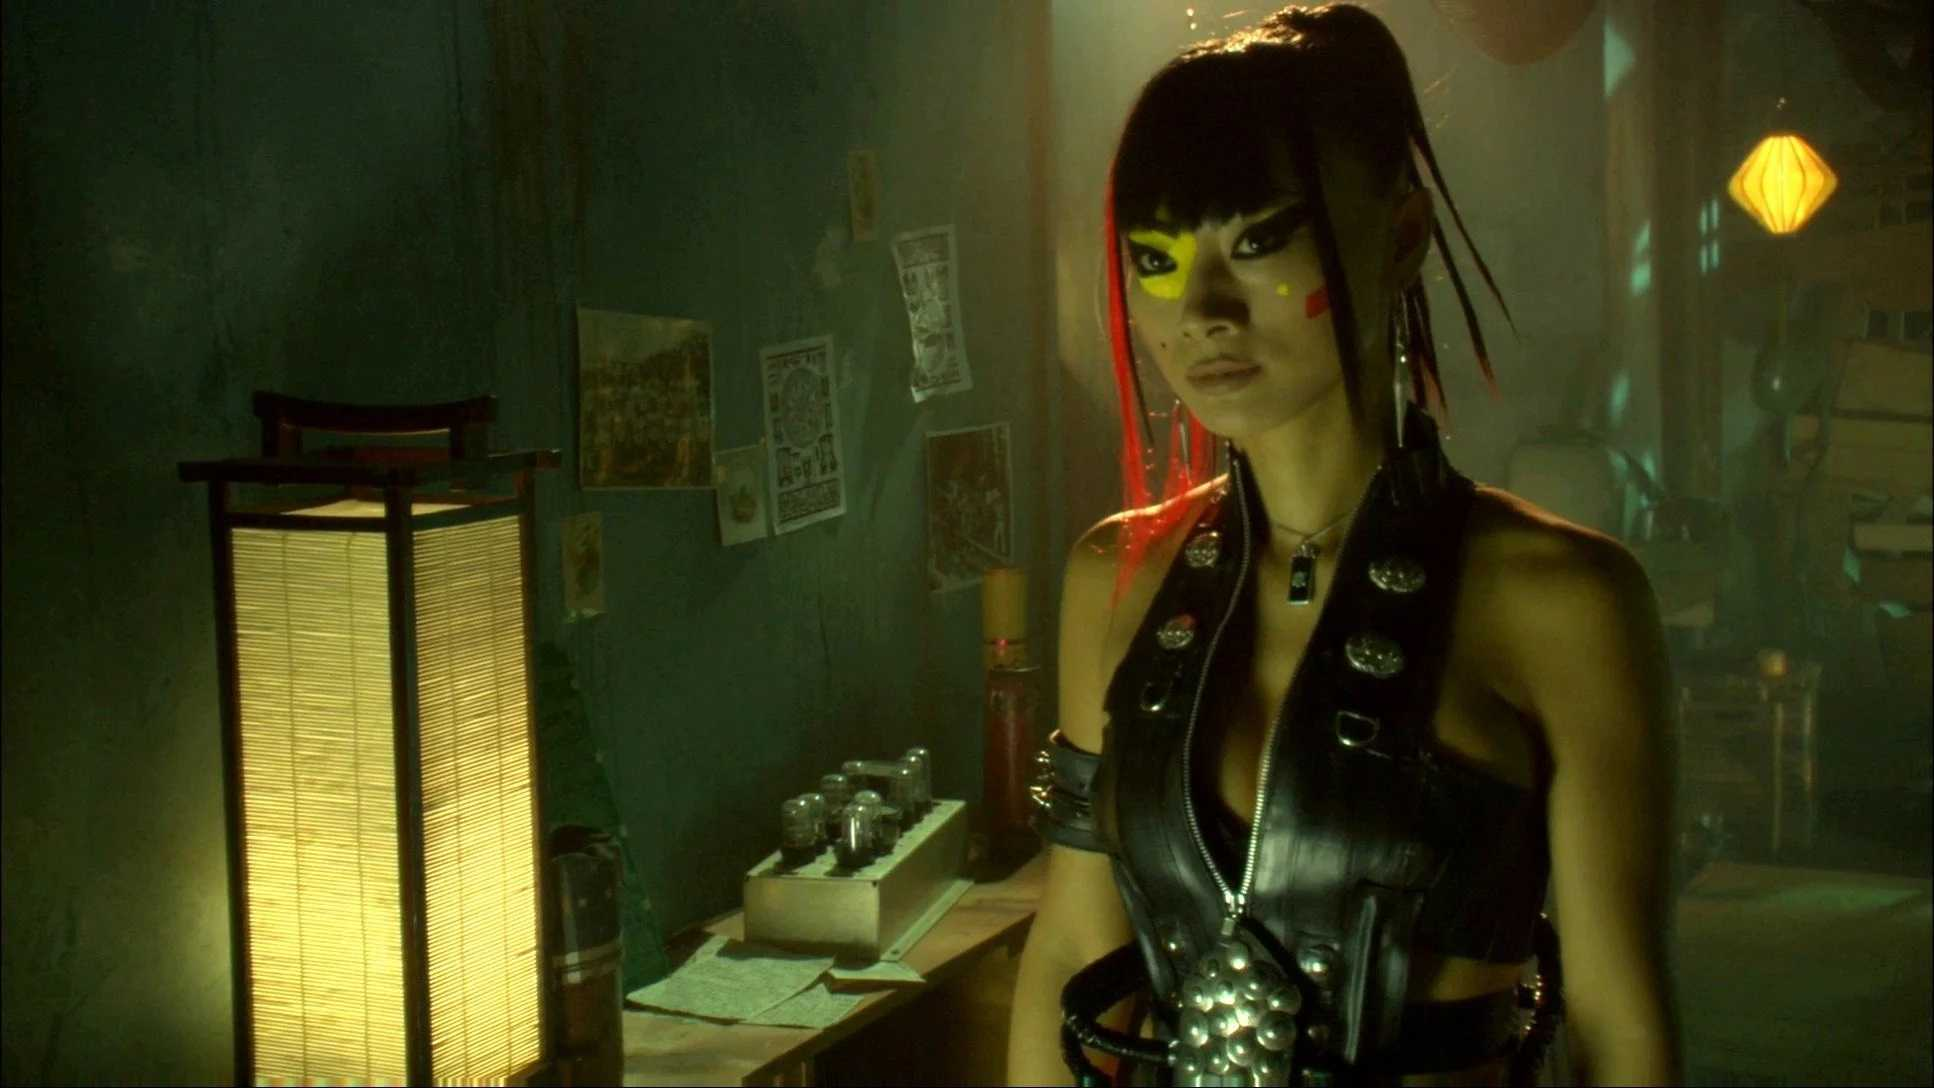 Bai Ling as Michelle in The Gene Generation (2007)